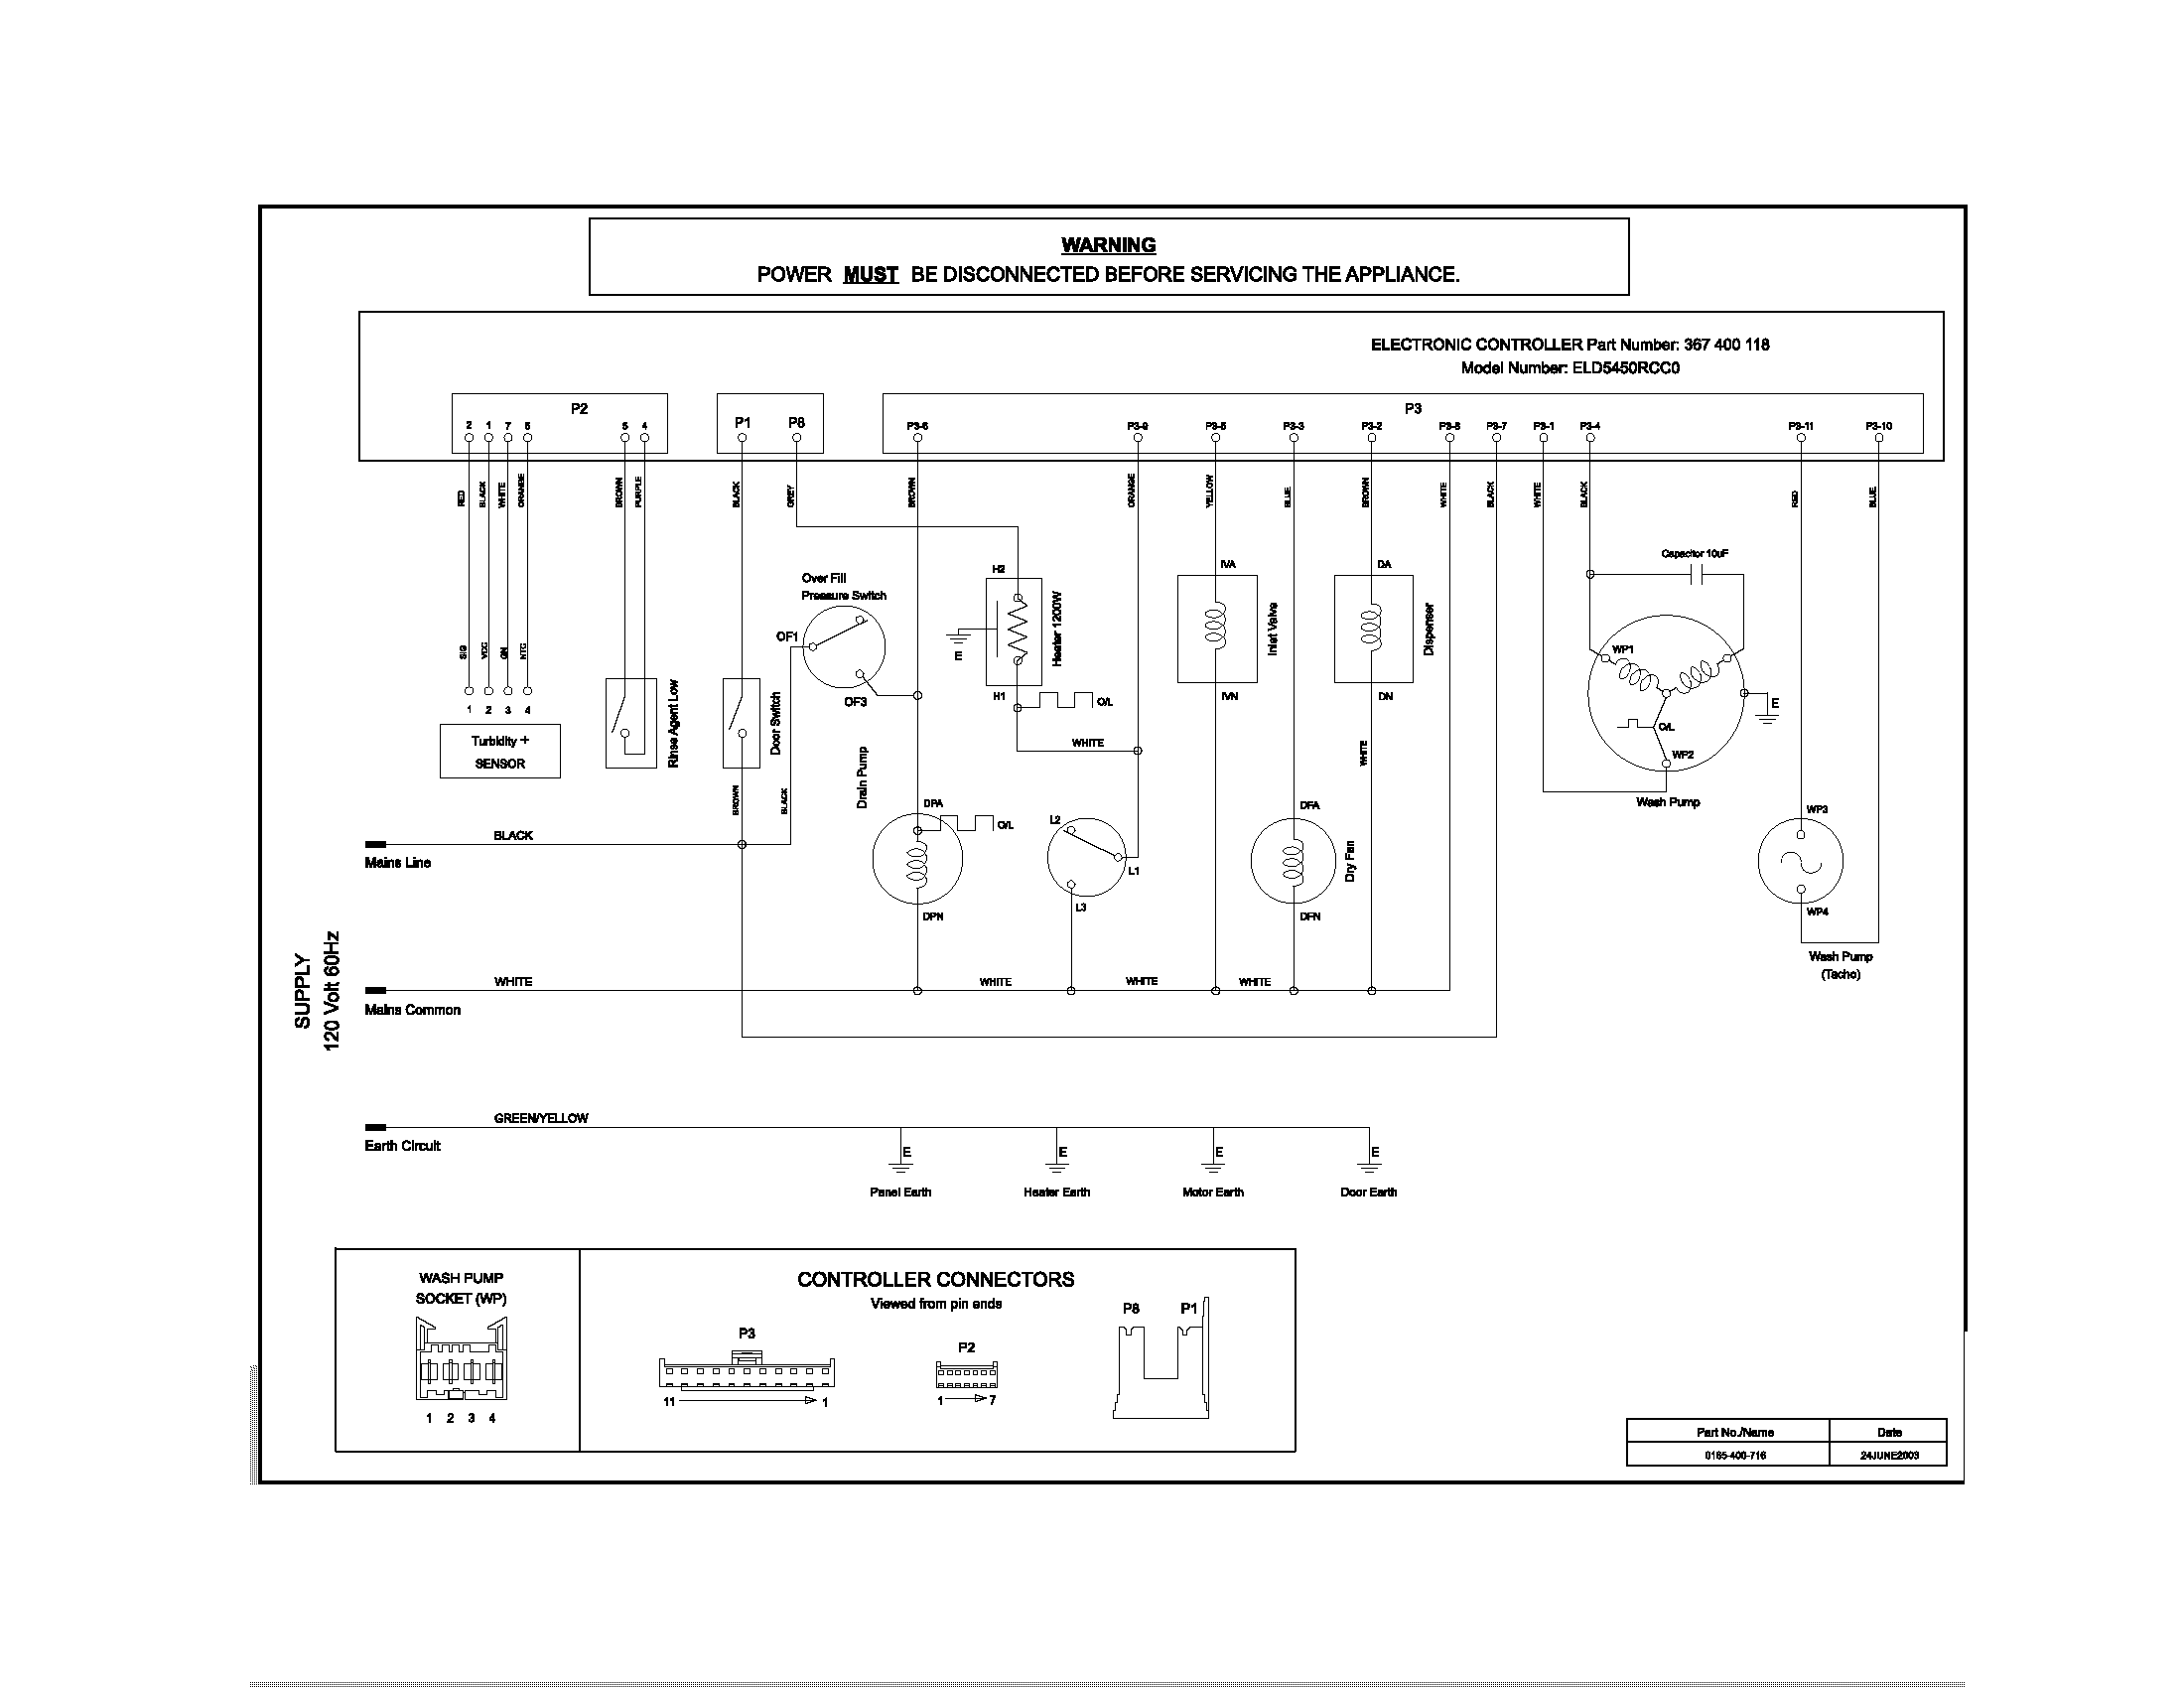 whirlpool dishwasher wiring diagram rj11 jack free engine image